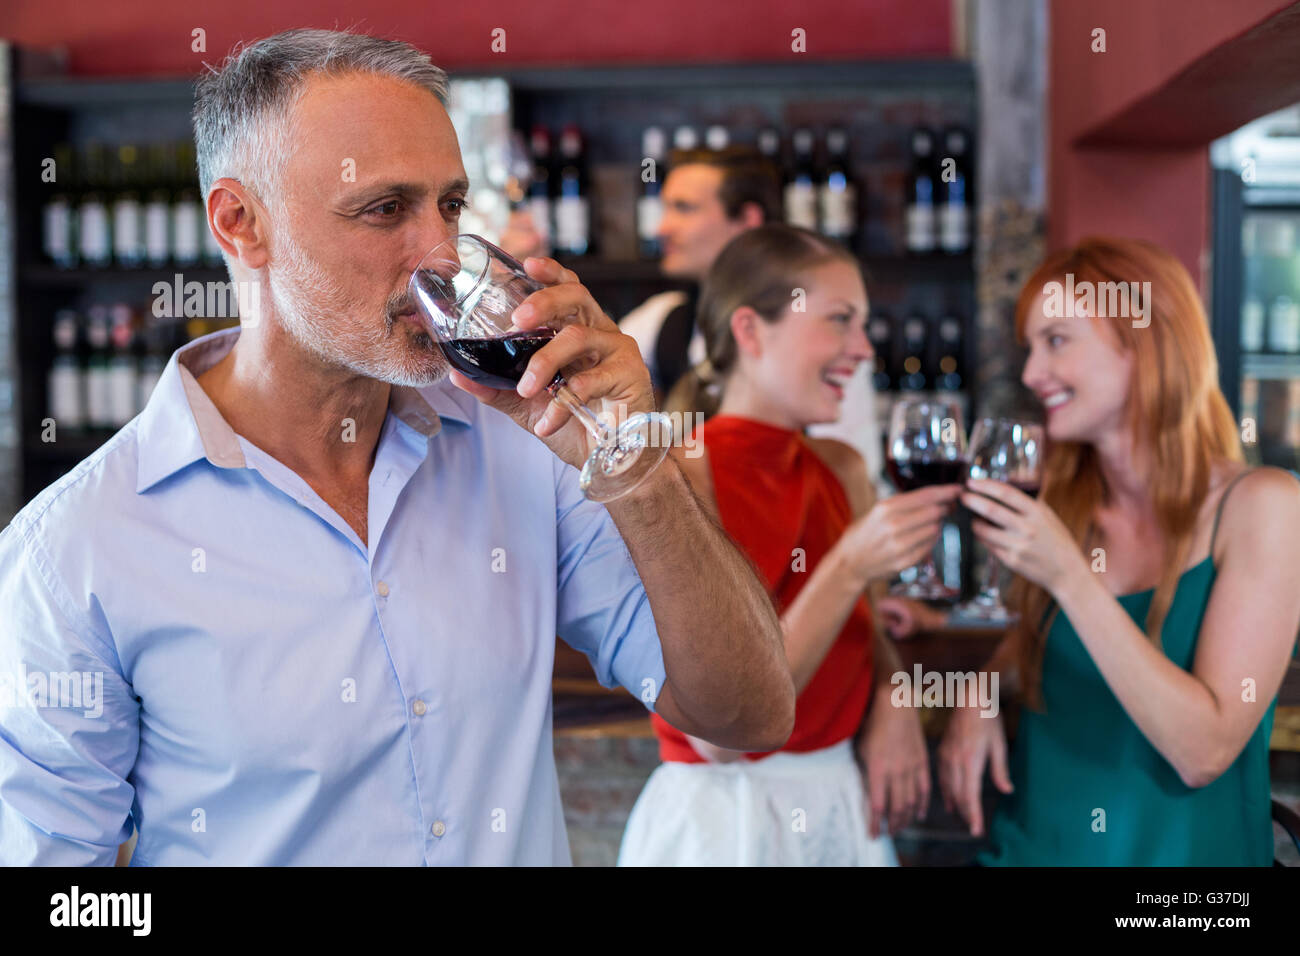 Man drinking red wine while two friends toasting the glasses in background Stock Photo